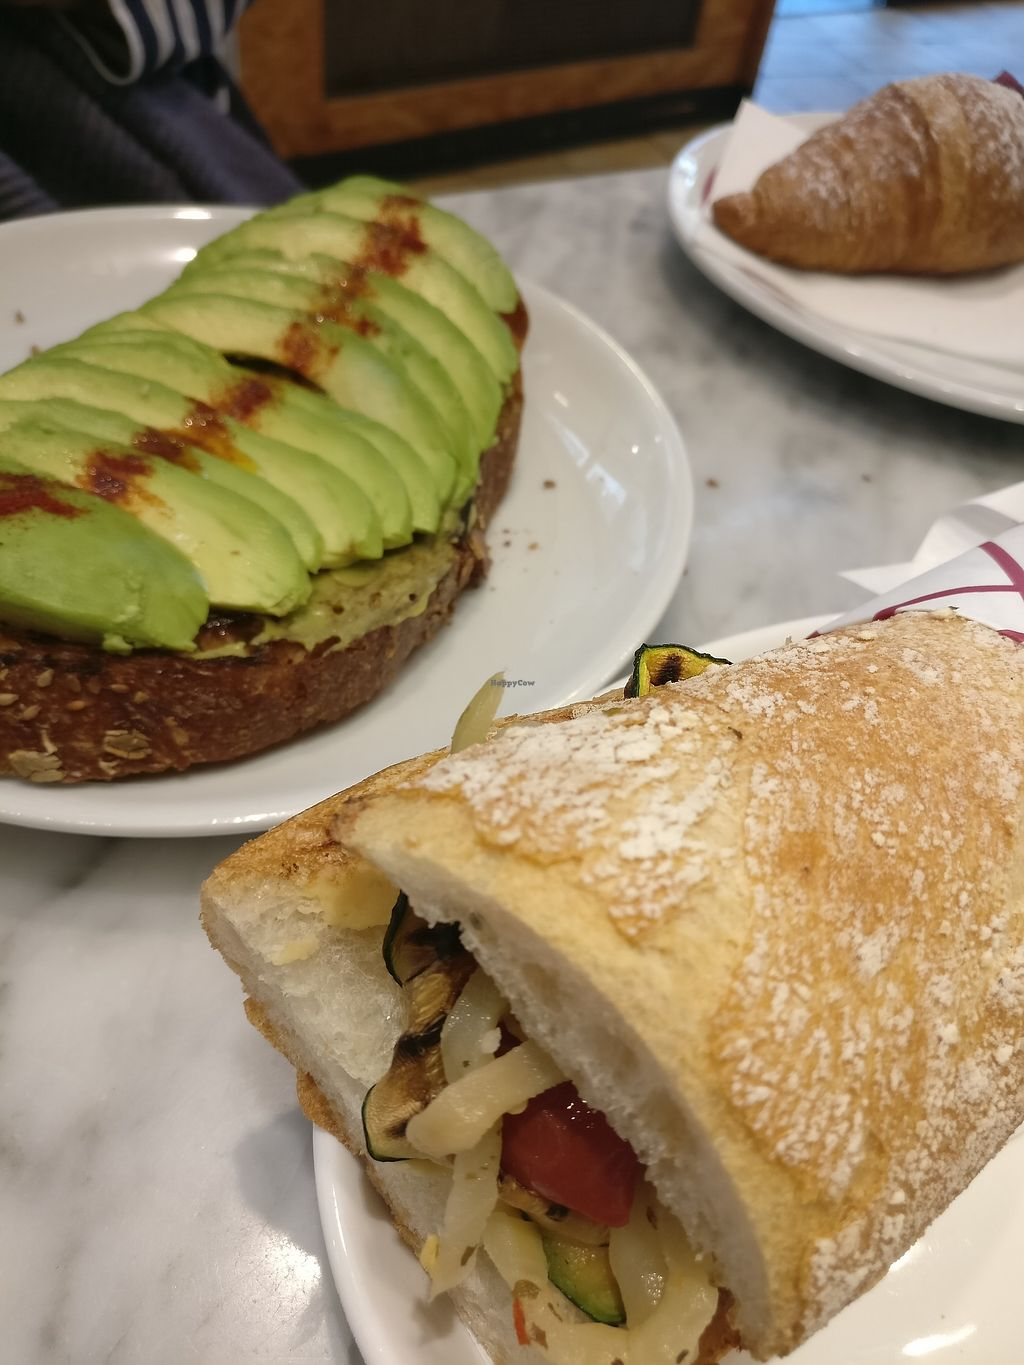 """Photo of Panini Durini  by <a href=""""/members/profile/JollBenn"""">JollBenn</a> <br/>Avocado toast. Grilled vegetables panini <br/> March 31, 2018  - <a href='/contact/abuse/image/74383/378627'>Report</a>"""